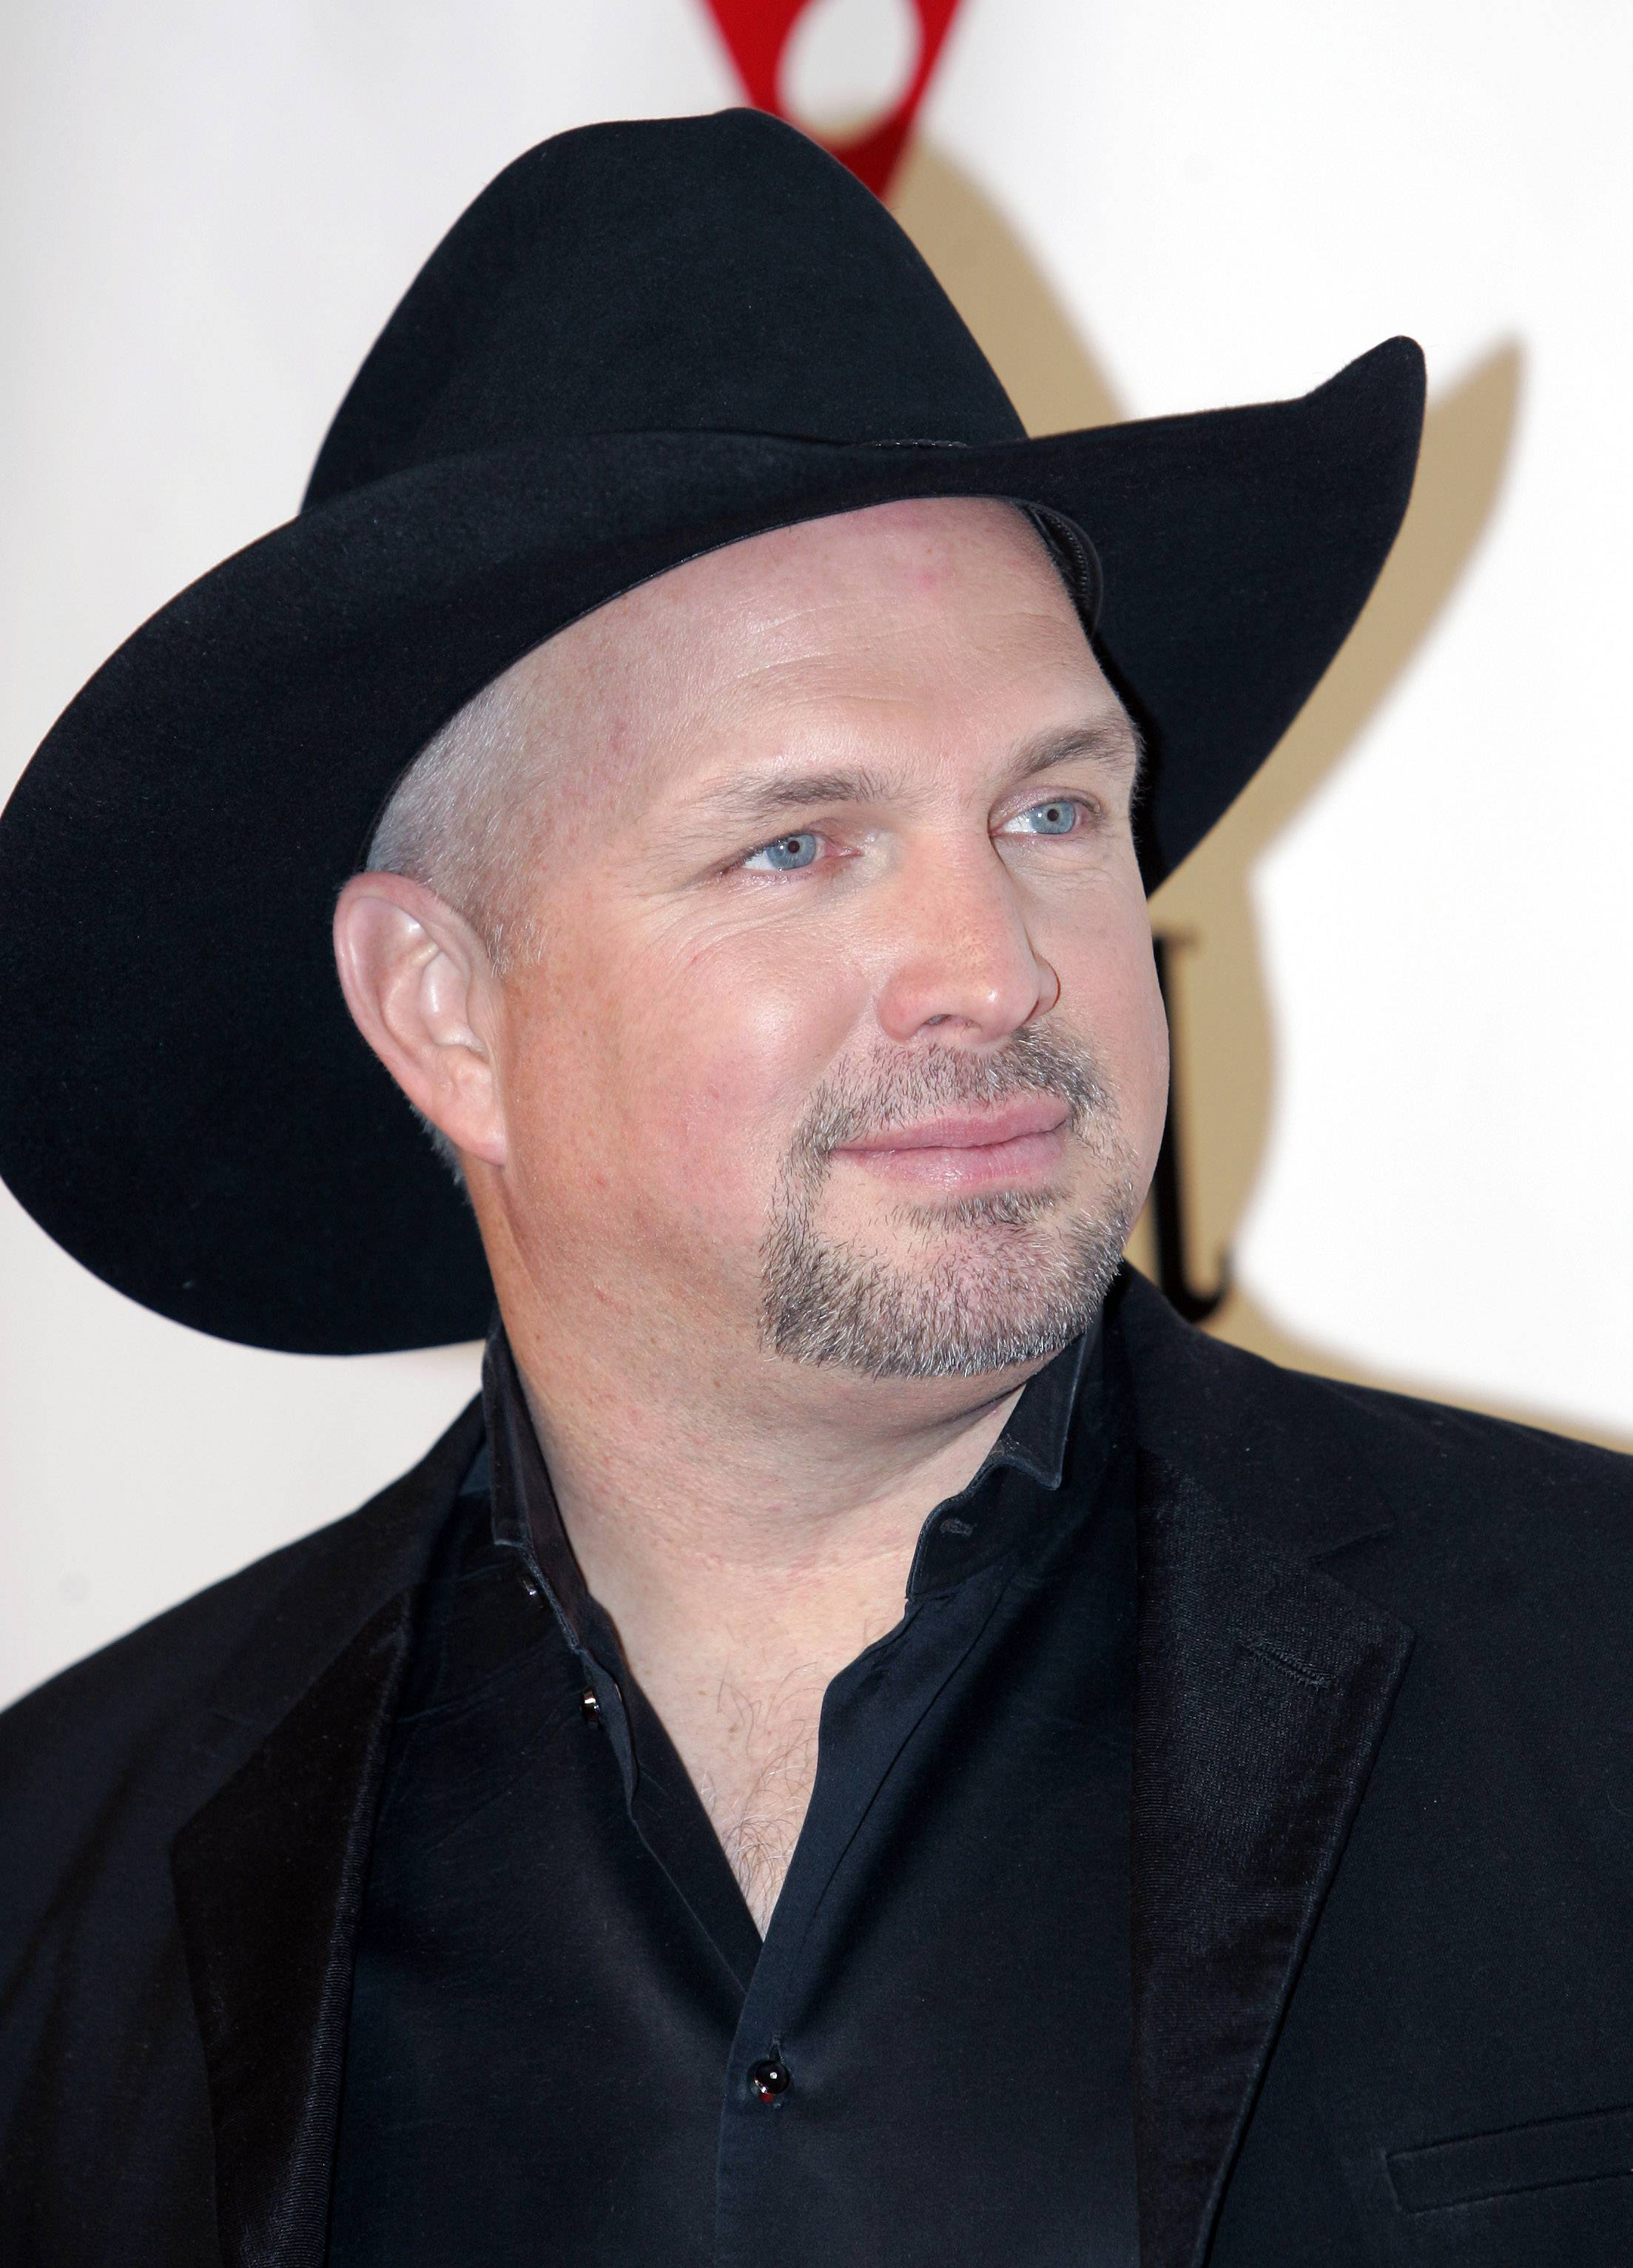 Garth Brooks launches his new tour next week with a series of shows at the Allstate Arena in Rosemont.